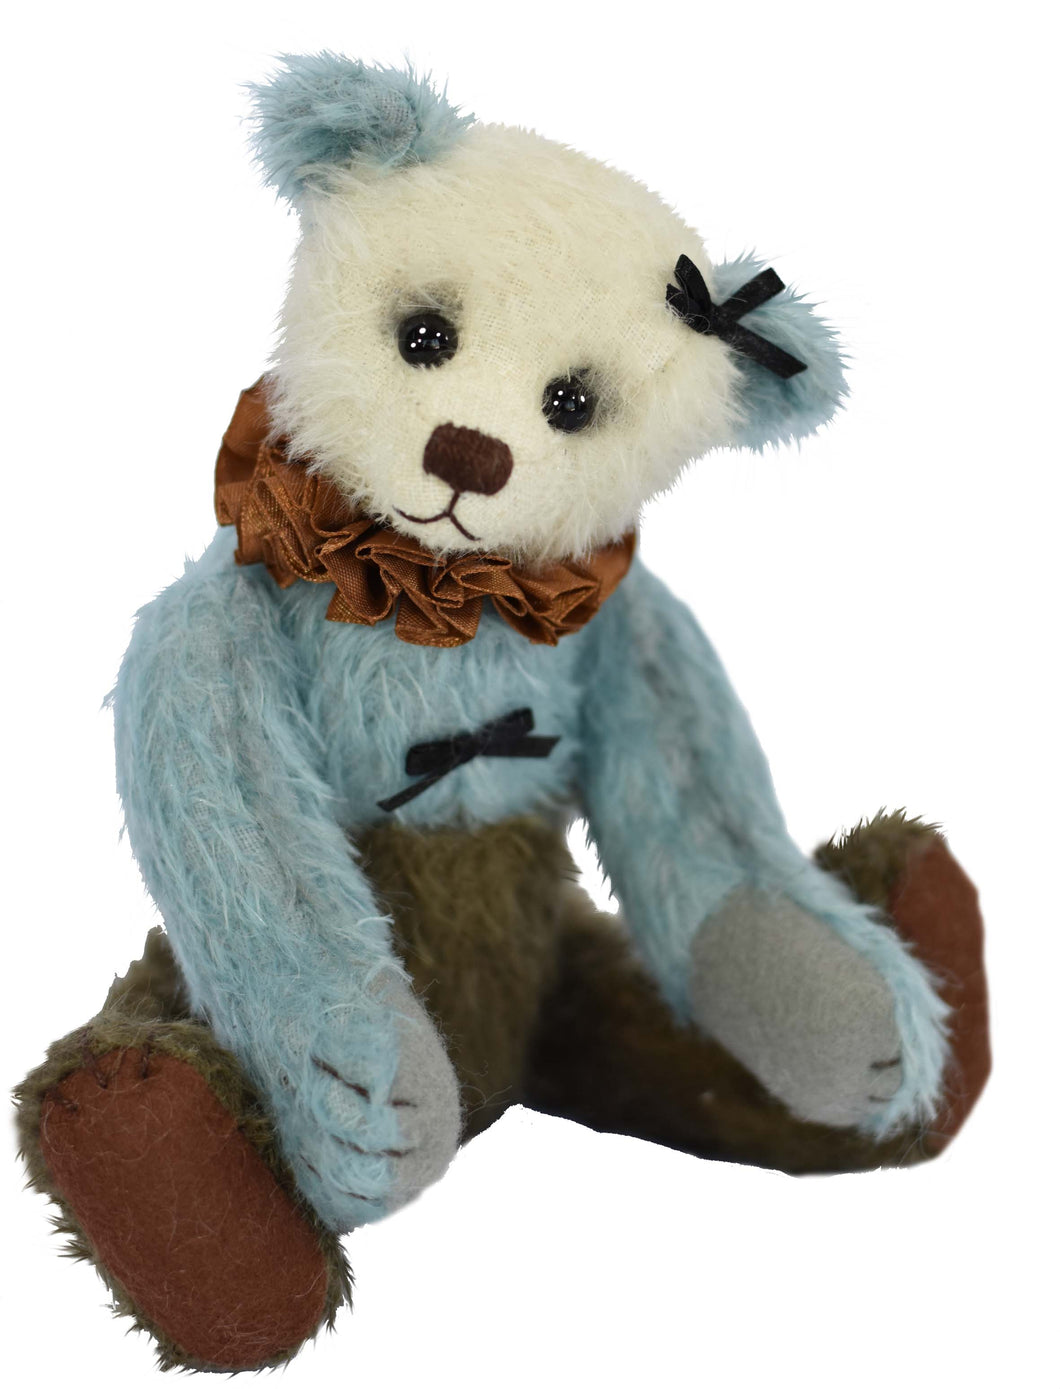 Only One Left! TEDDY MELBA / CLEMENS MOHAIR LIMITED BEAR